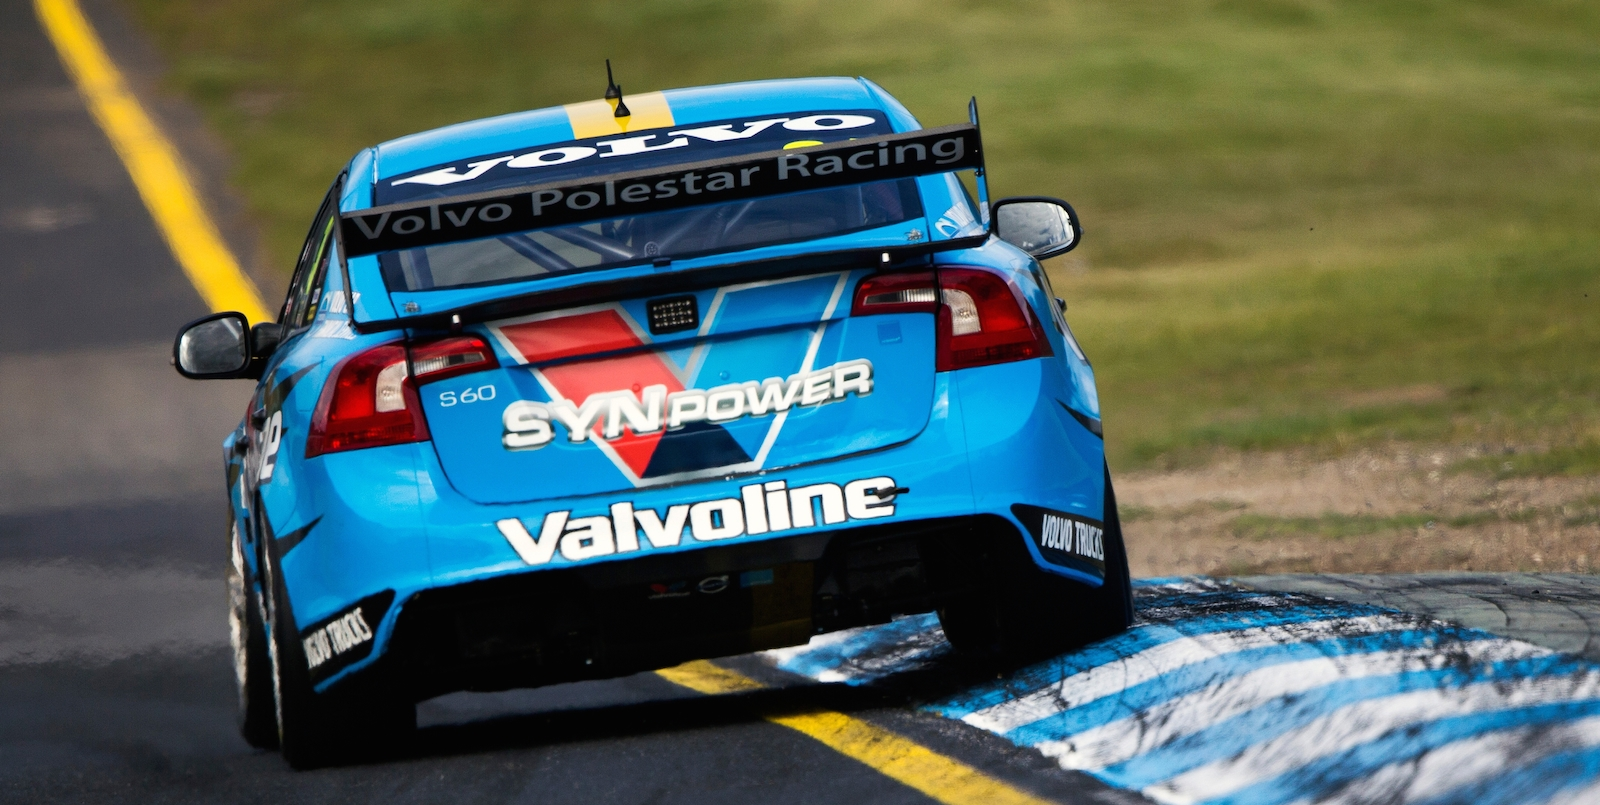 Volvo's motorsport future in doubt : Australian division uncommitted